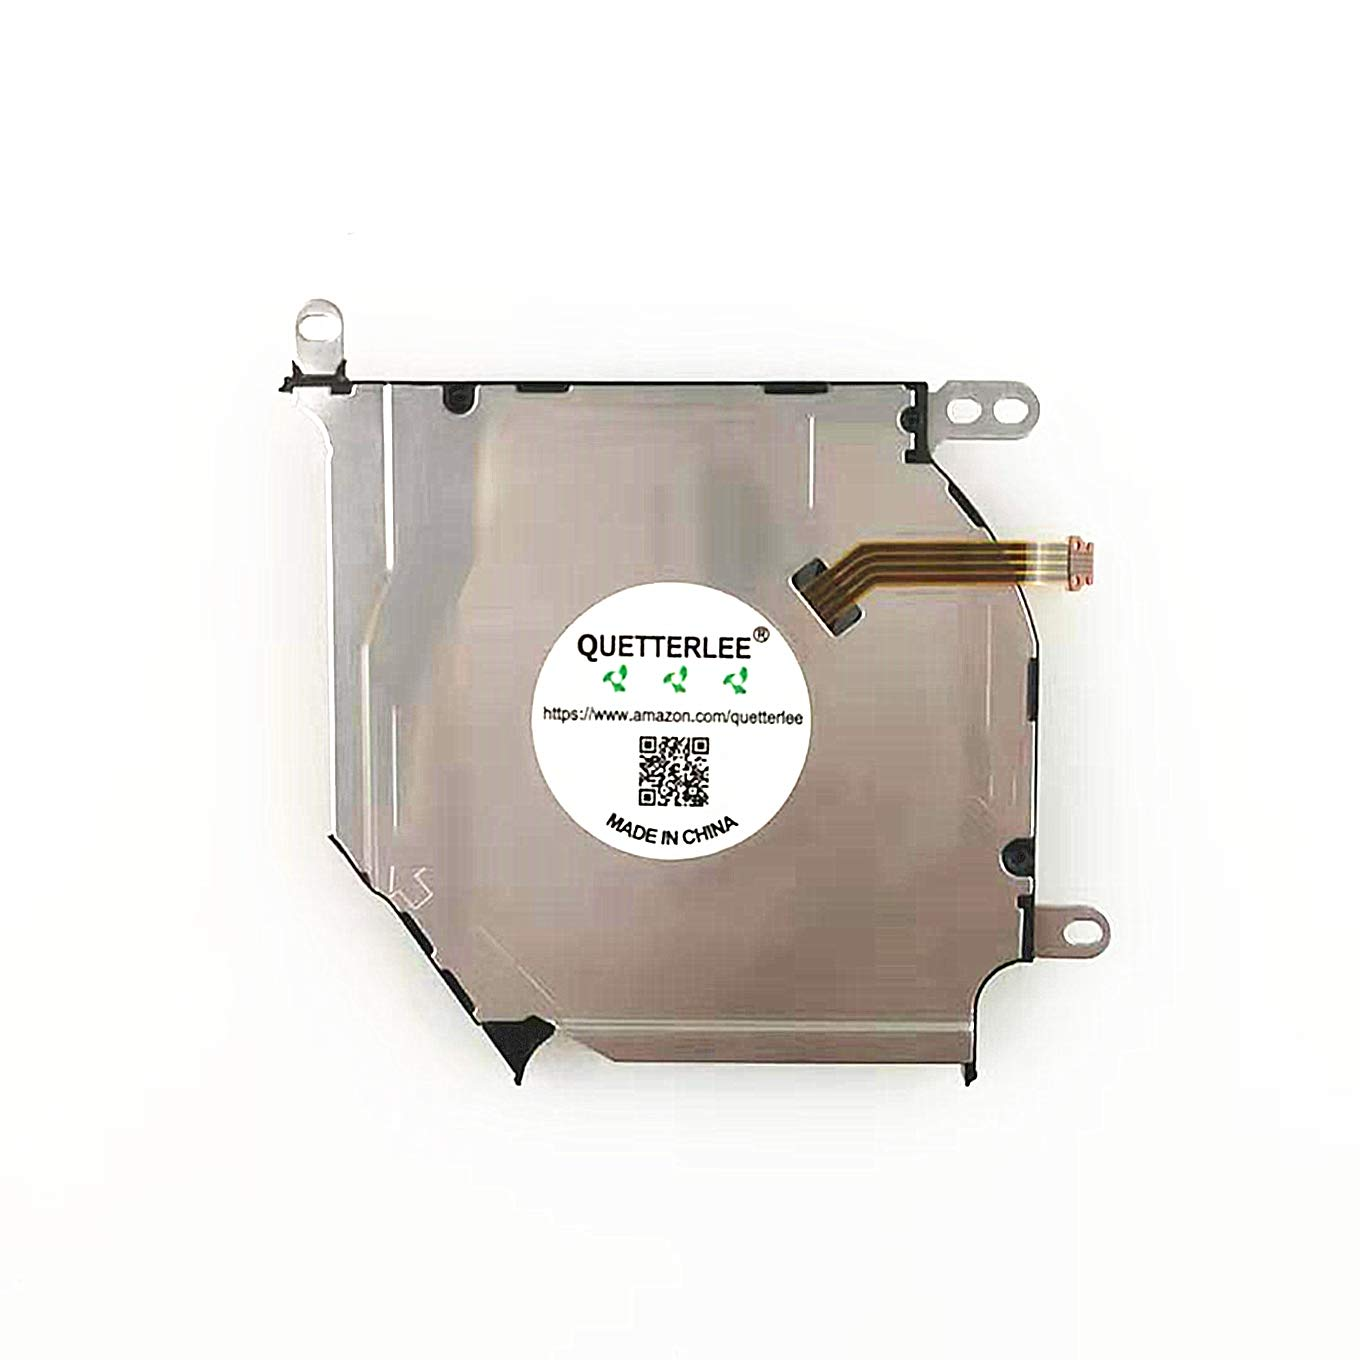 QUETTERLEE Replacement New CPU Cooling Surface Pro 4 Fan for Microsoft Surface Pro 4 Model 1724 Series CC131K06 DC5V 0.36A Fan